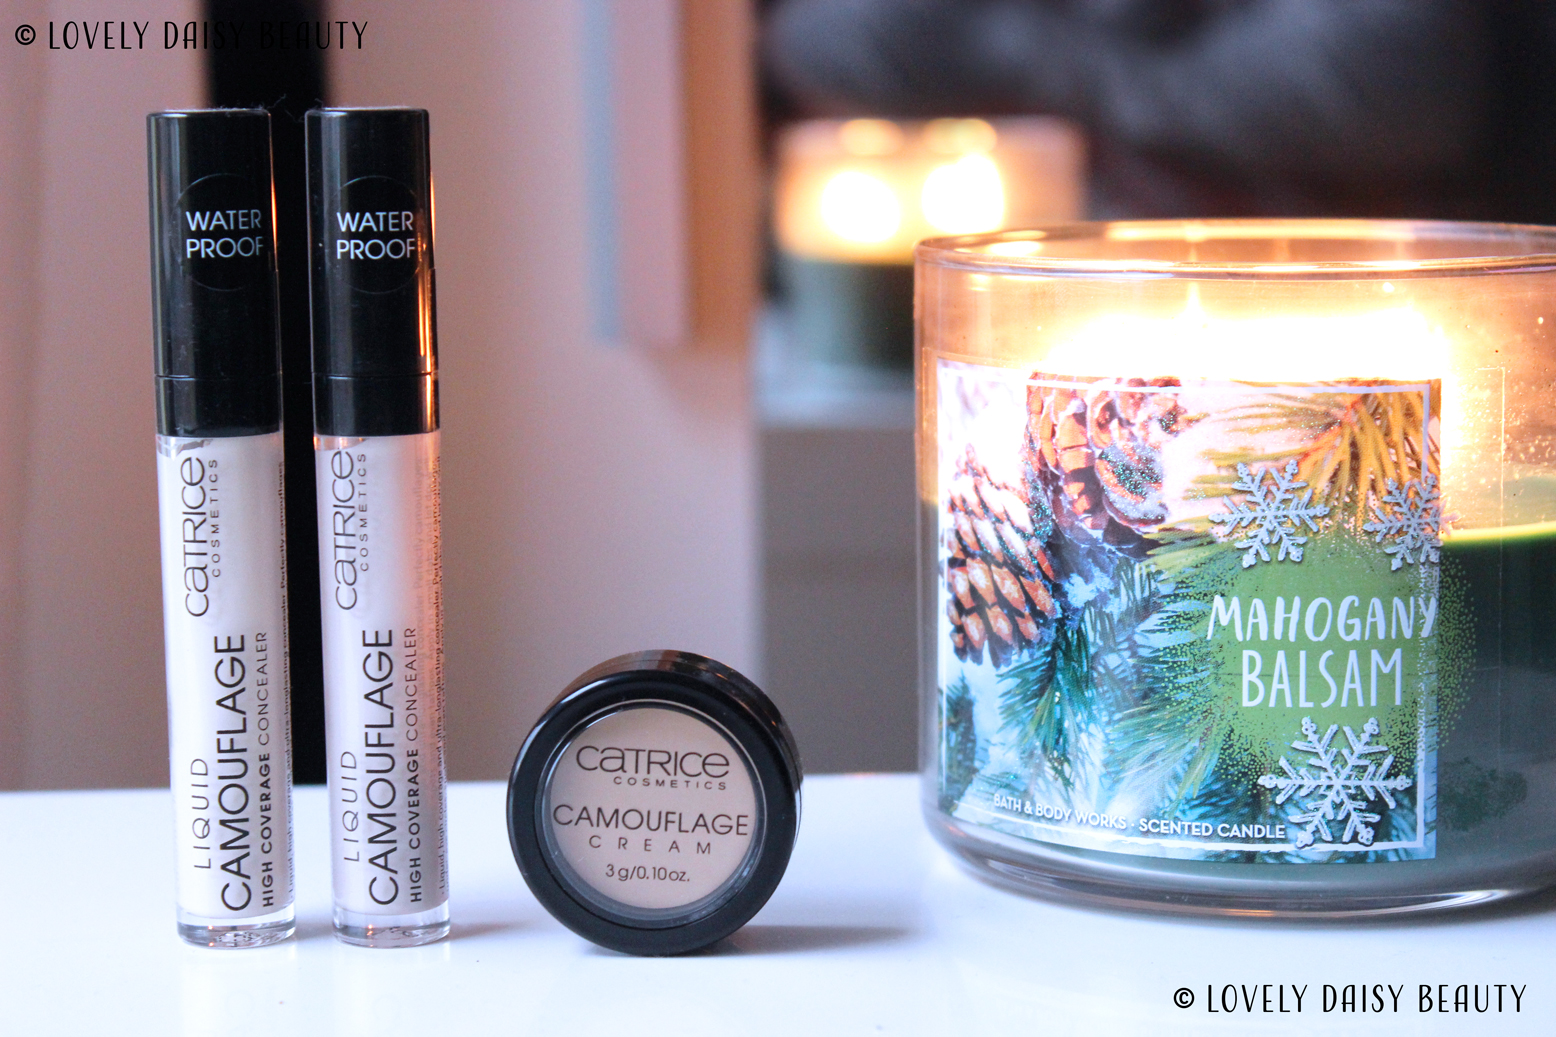 Camouflage Concealer Catrice 1